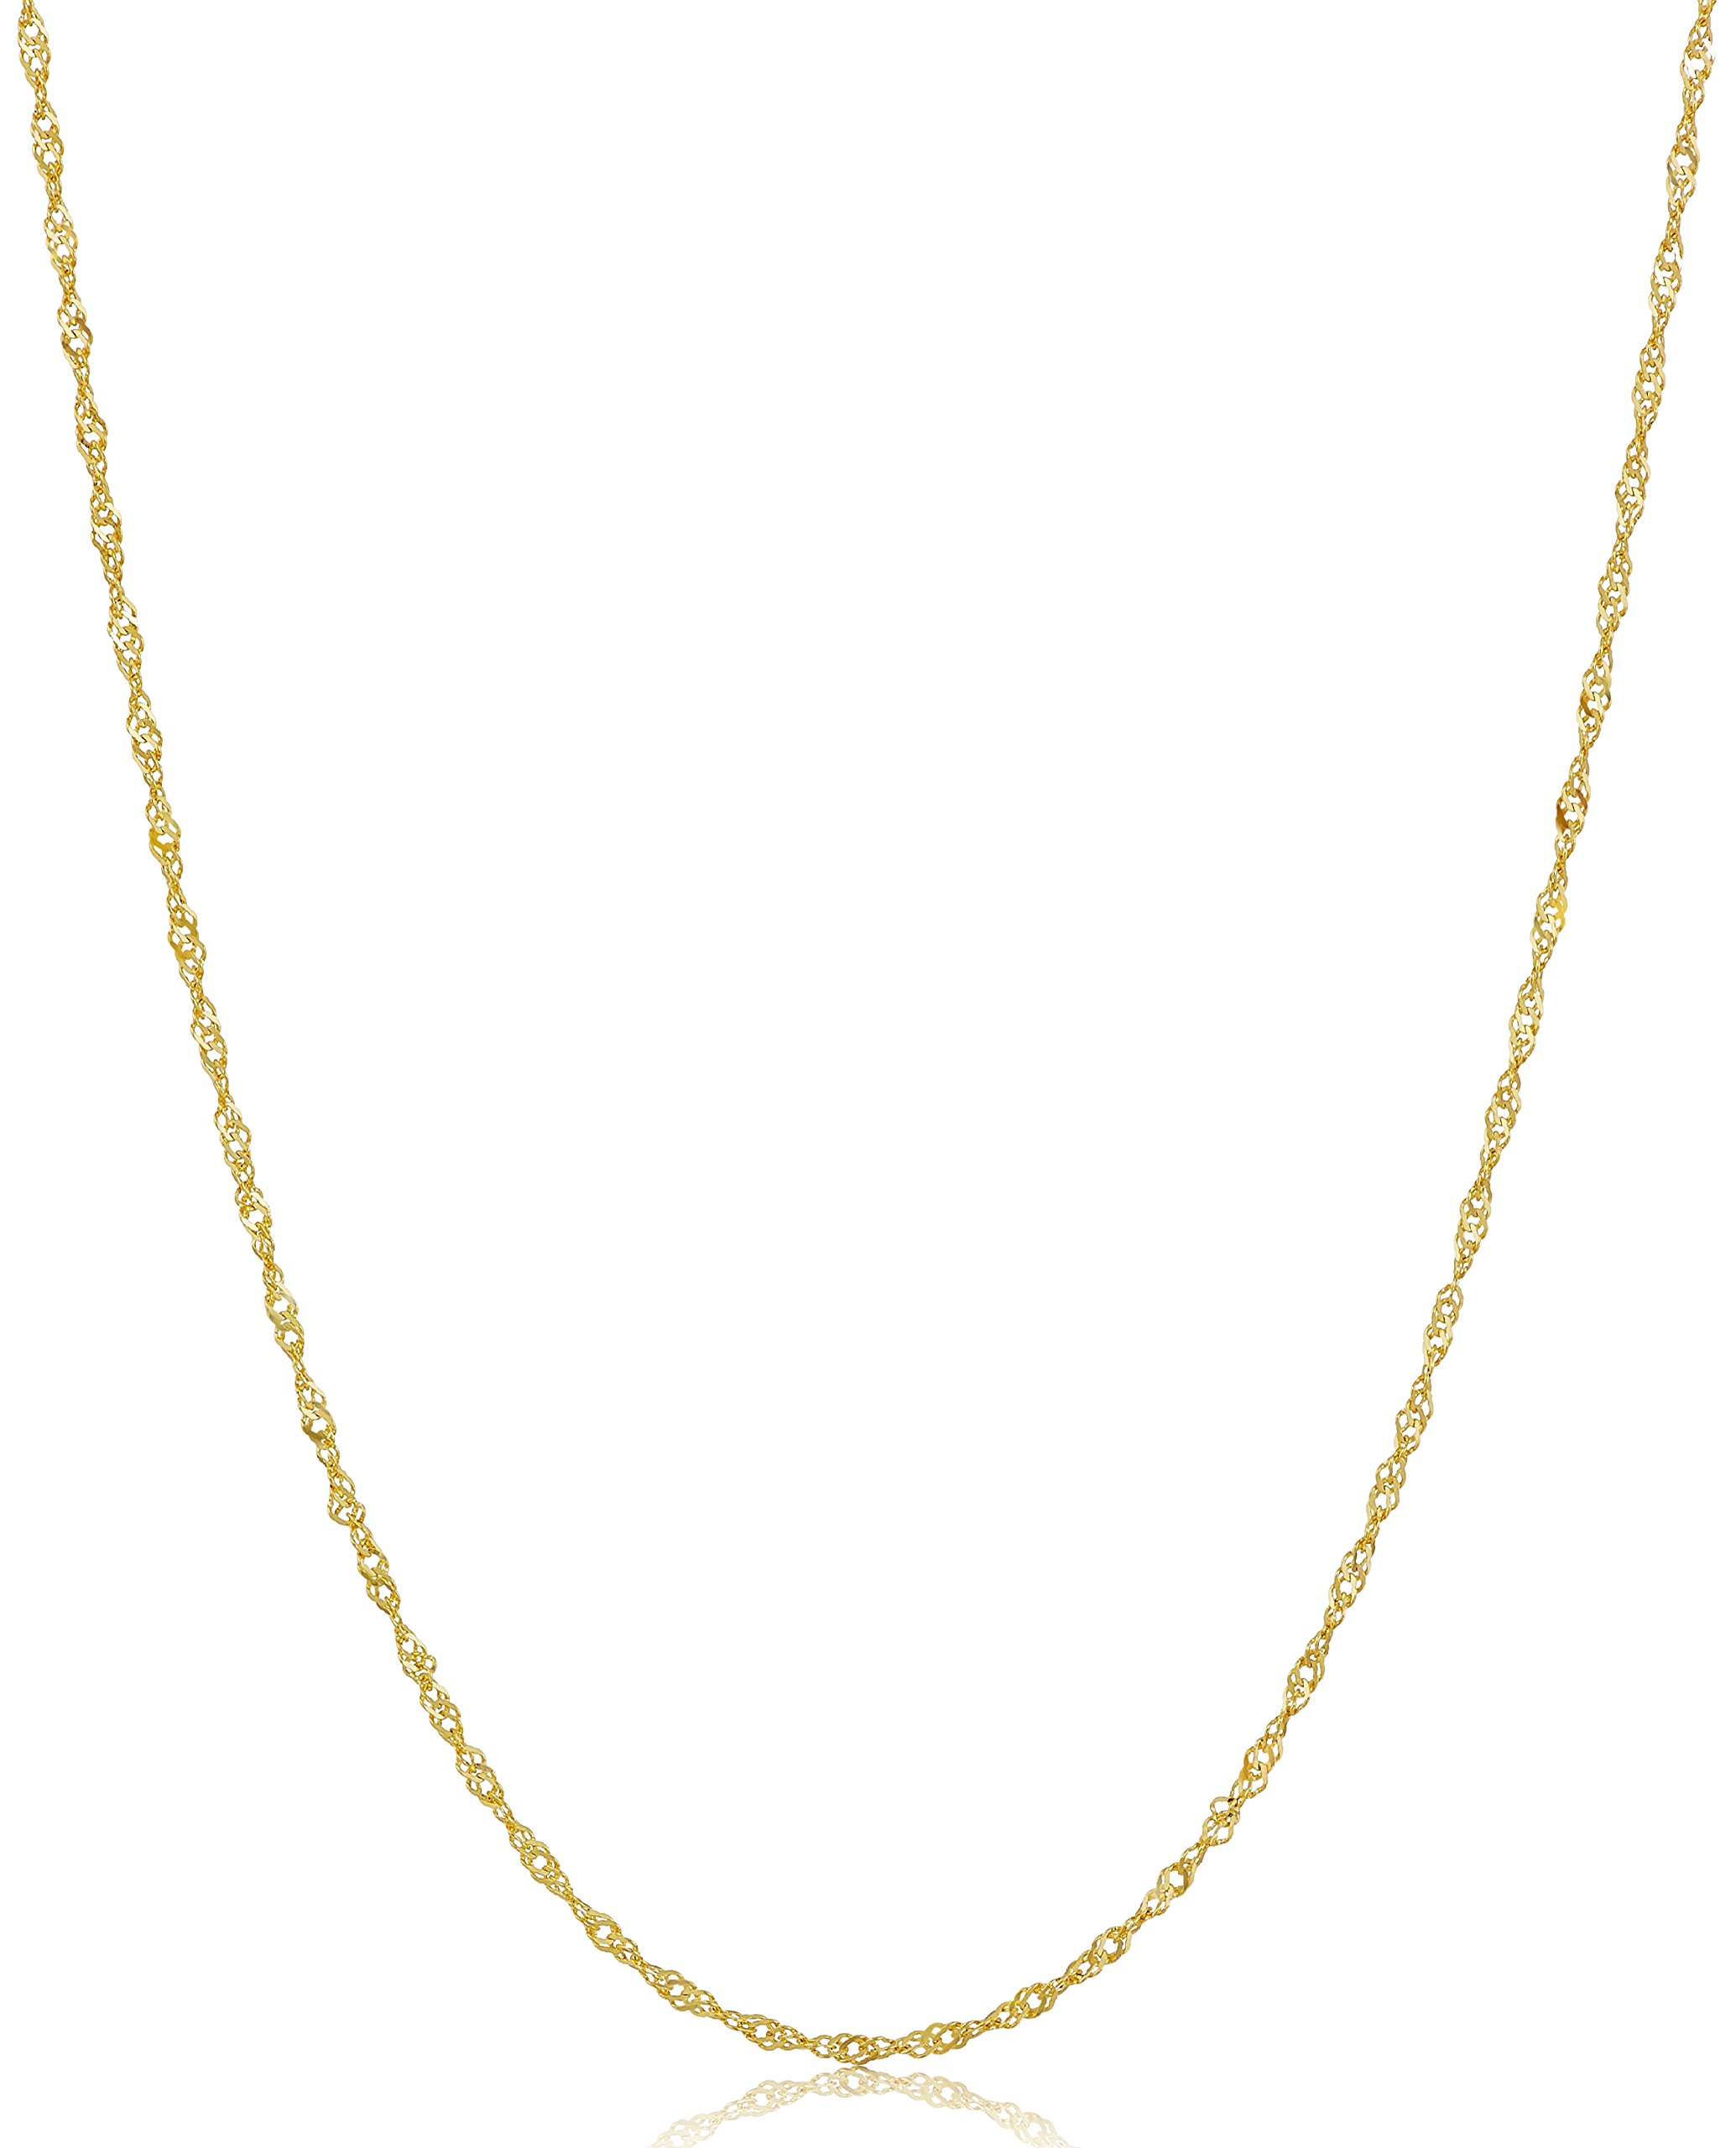 14k Yellow Gold Twist Curb Chain Necklace, 18''